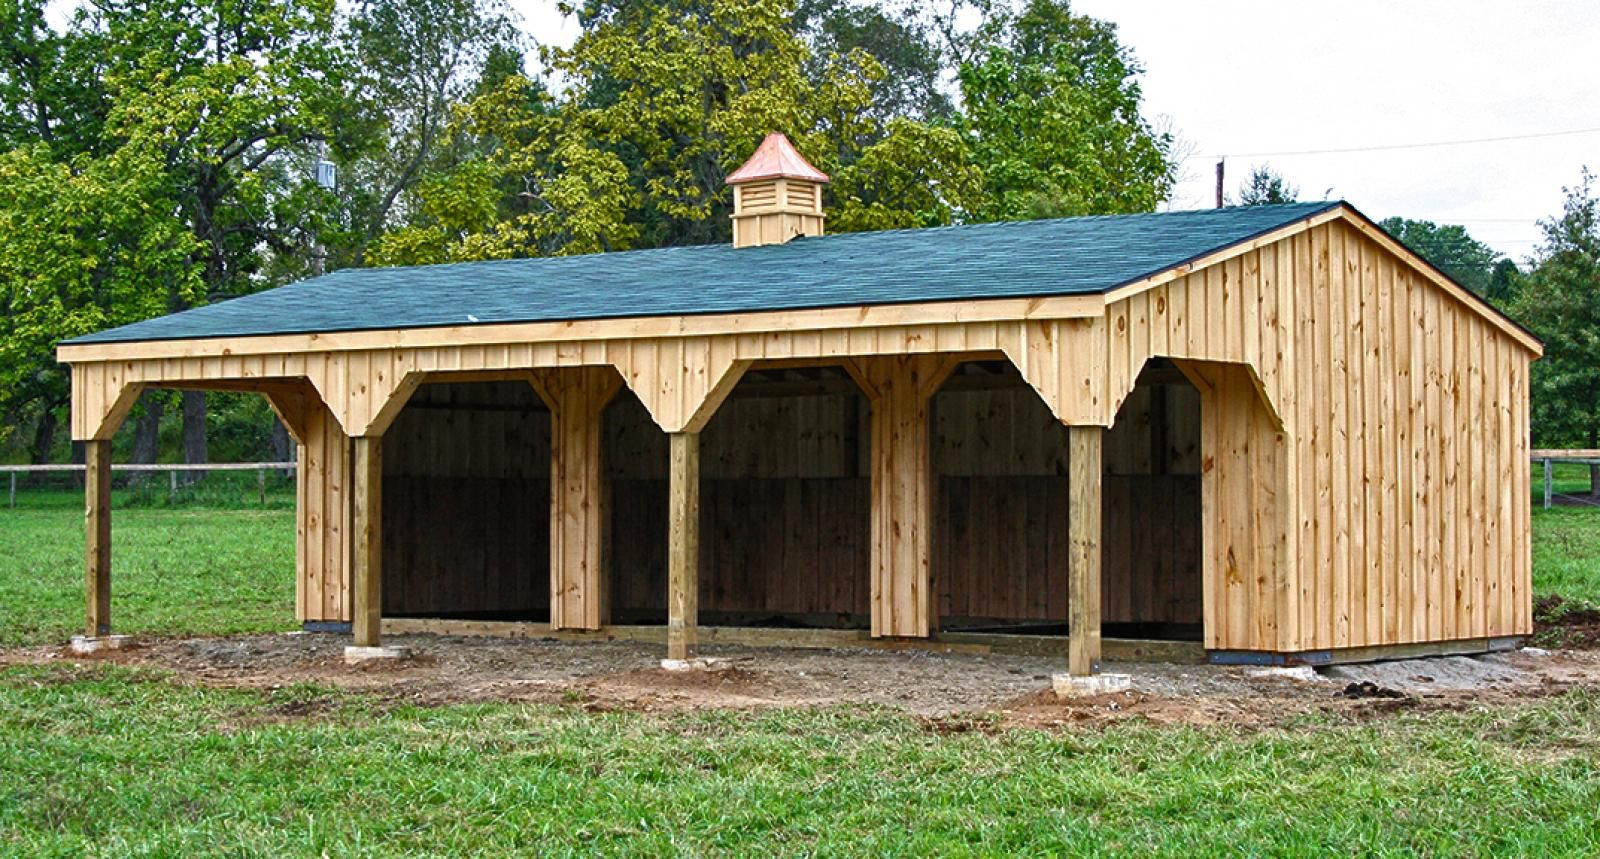 in s diane horse shed pipe sheds neff kits klene run shelters wrangler shelter structure structures